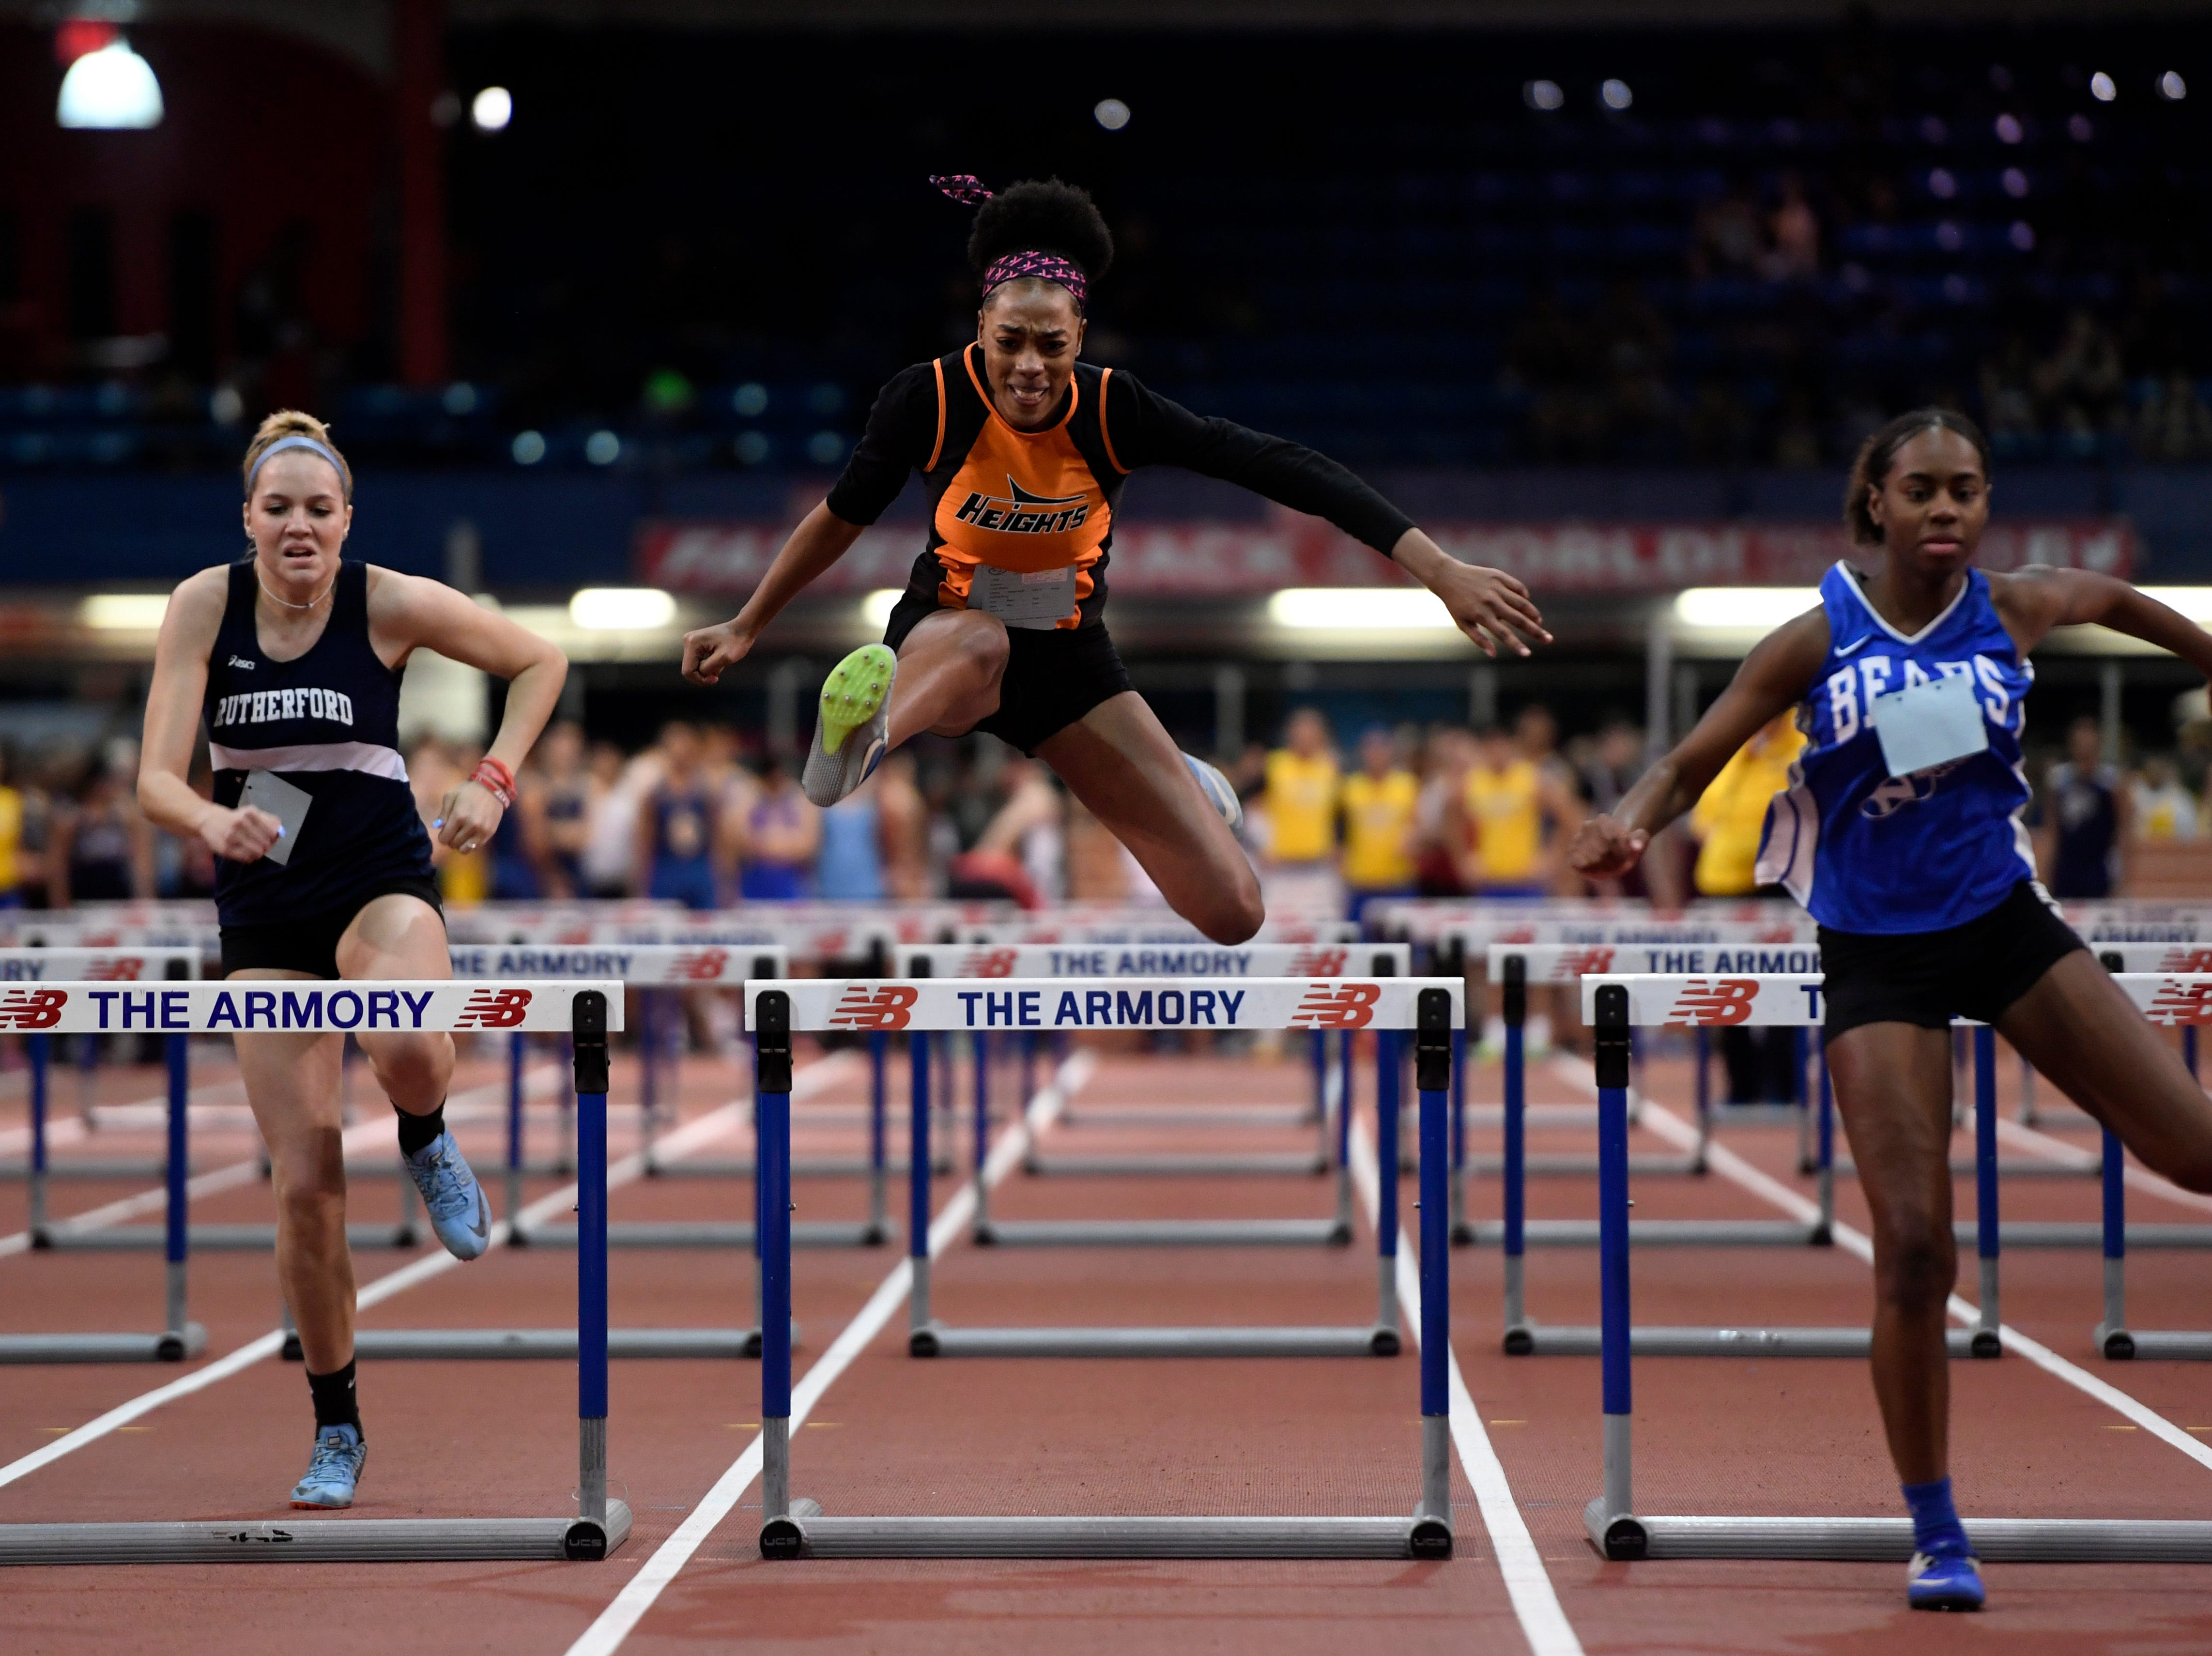 Talia Ferguson of Hasbrouck Heights (center) competes in the 55-meter hurdles during the NJIC track meet at the Armory Track on Monday, Jan. 7, 2019, in New York.